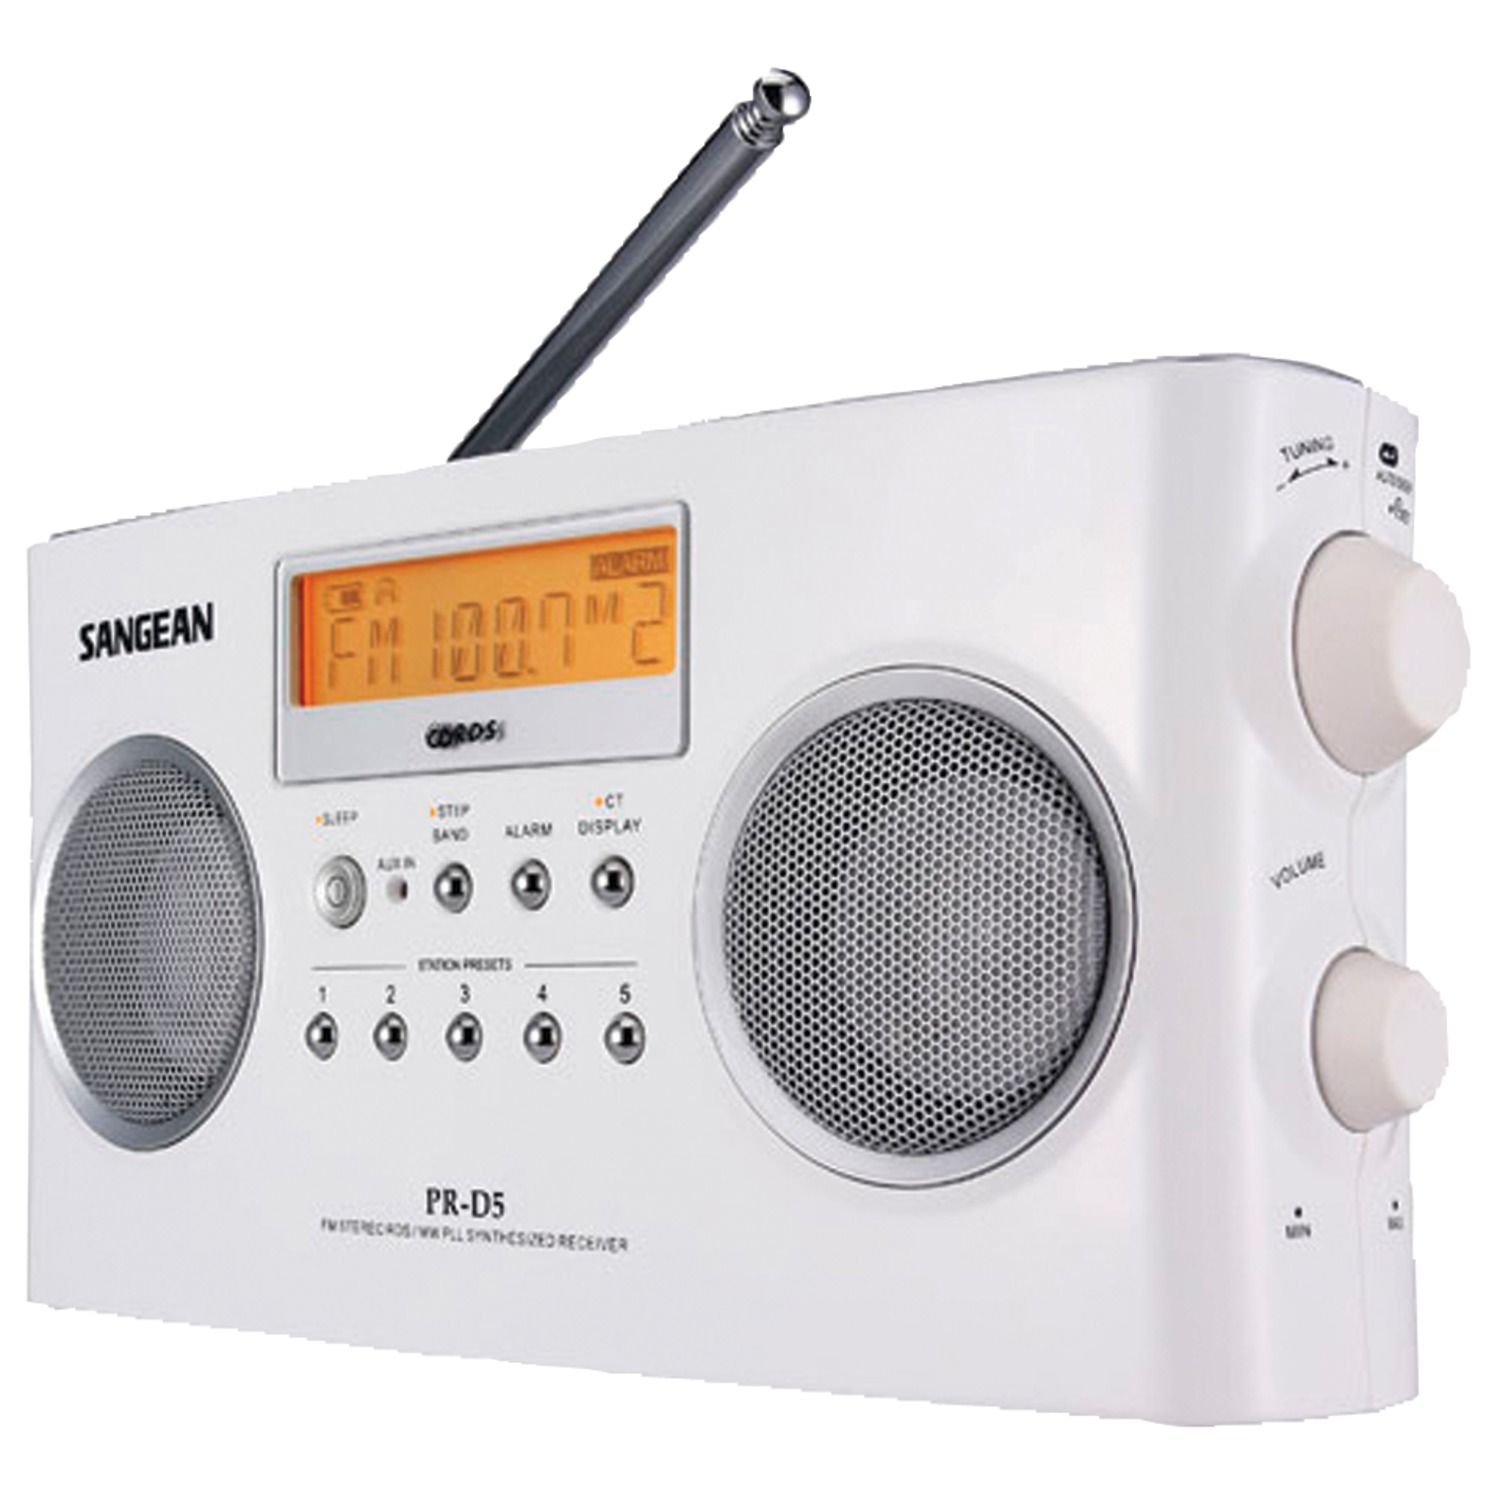 Sangean PRD5 Digital Portable Stereo Receivers with AM/FM Radio (White)